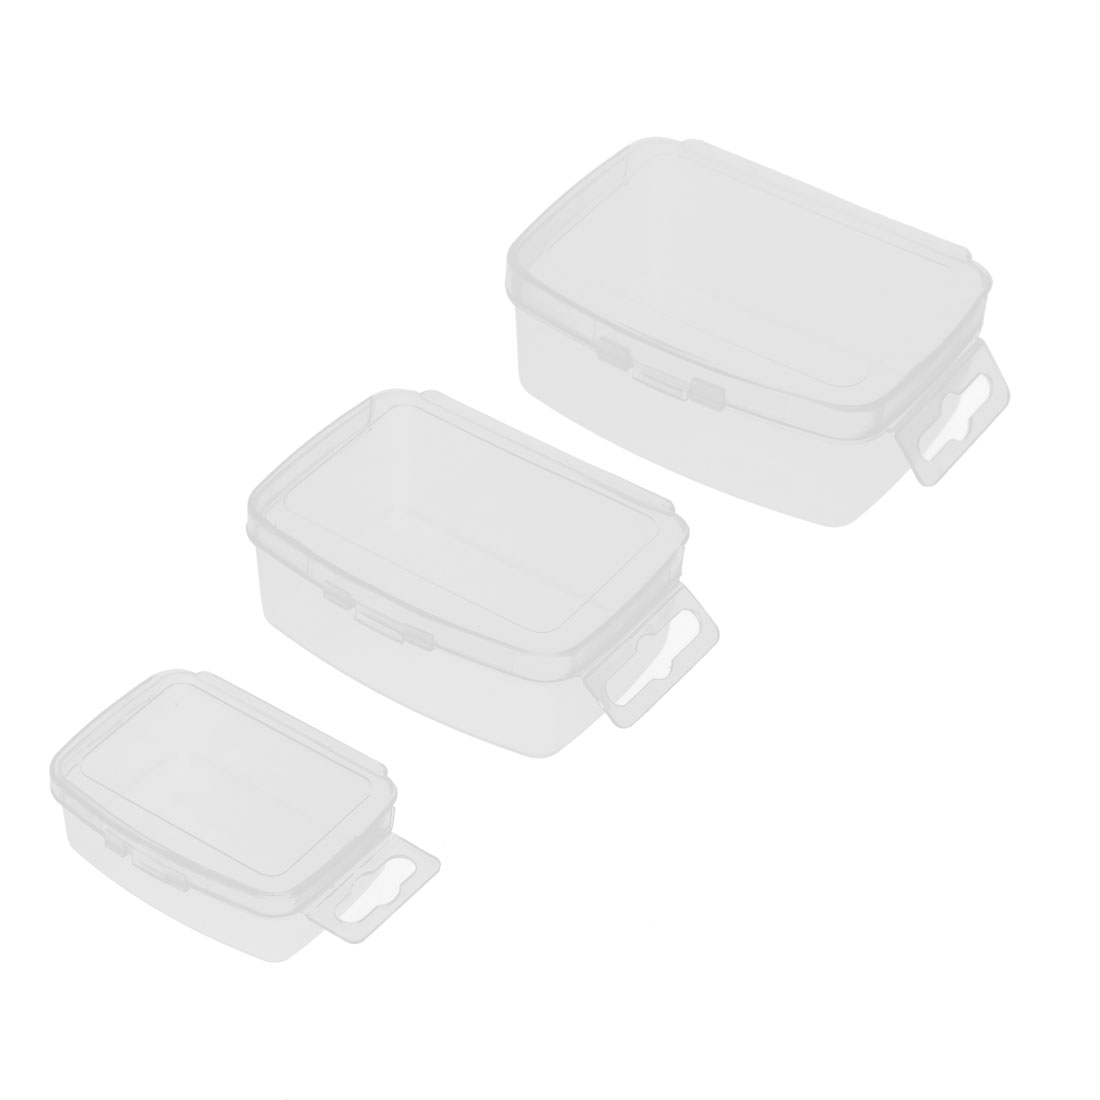 Home Travel Portable Plastic Rectangle Storage Box Case Container Holder Clear 3 in 1